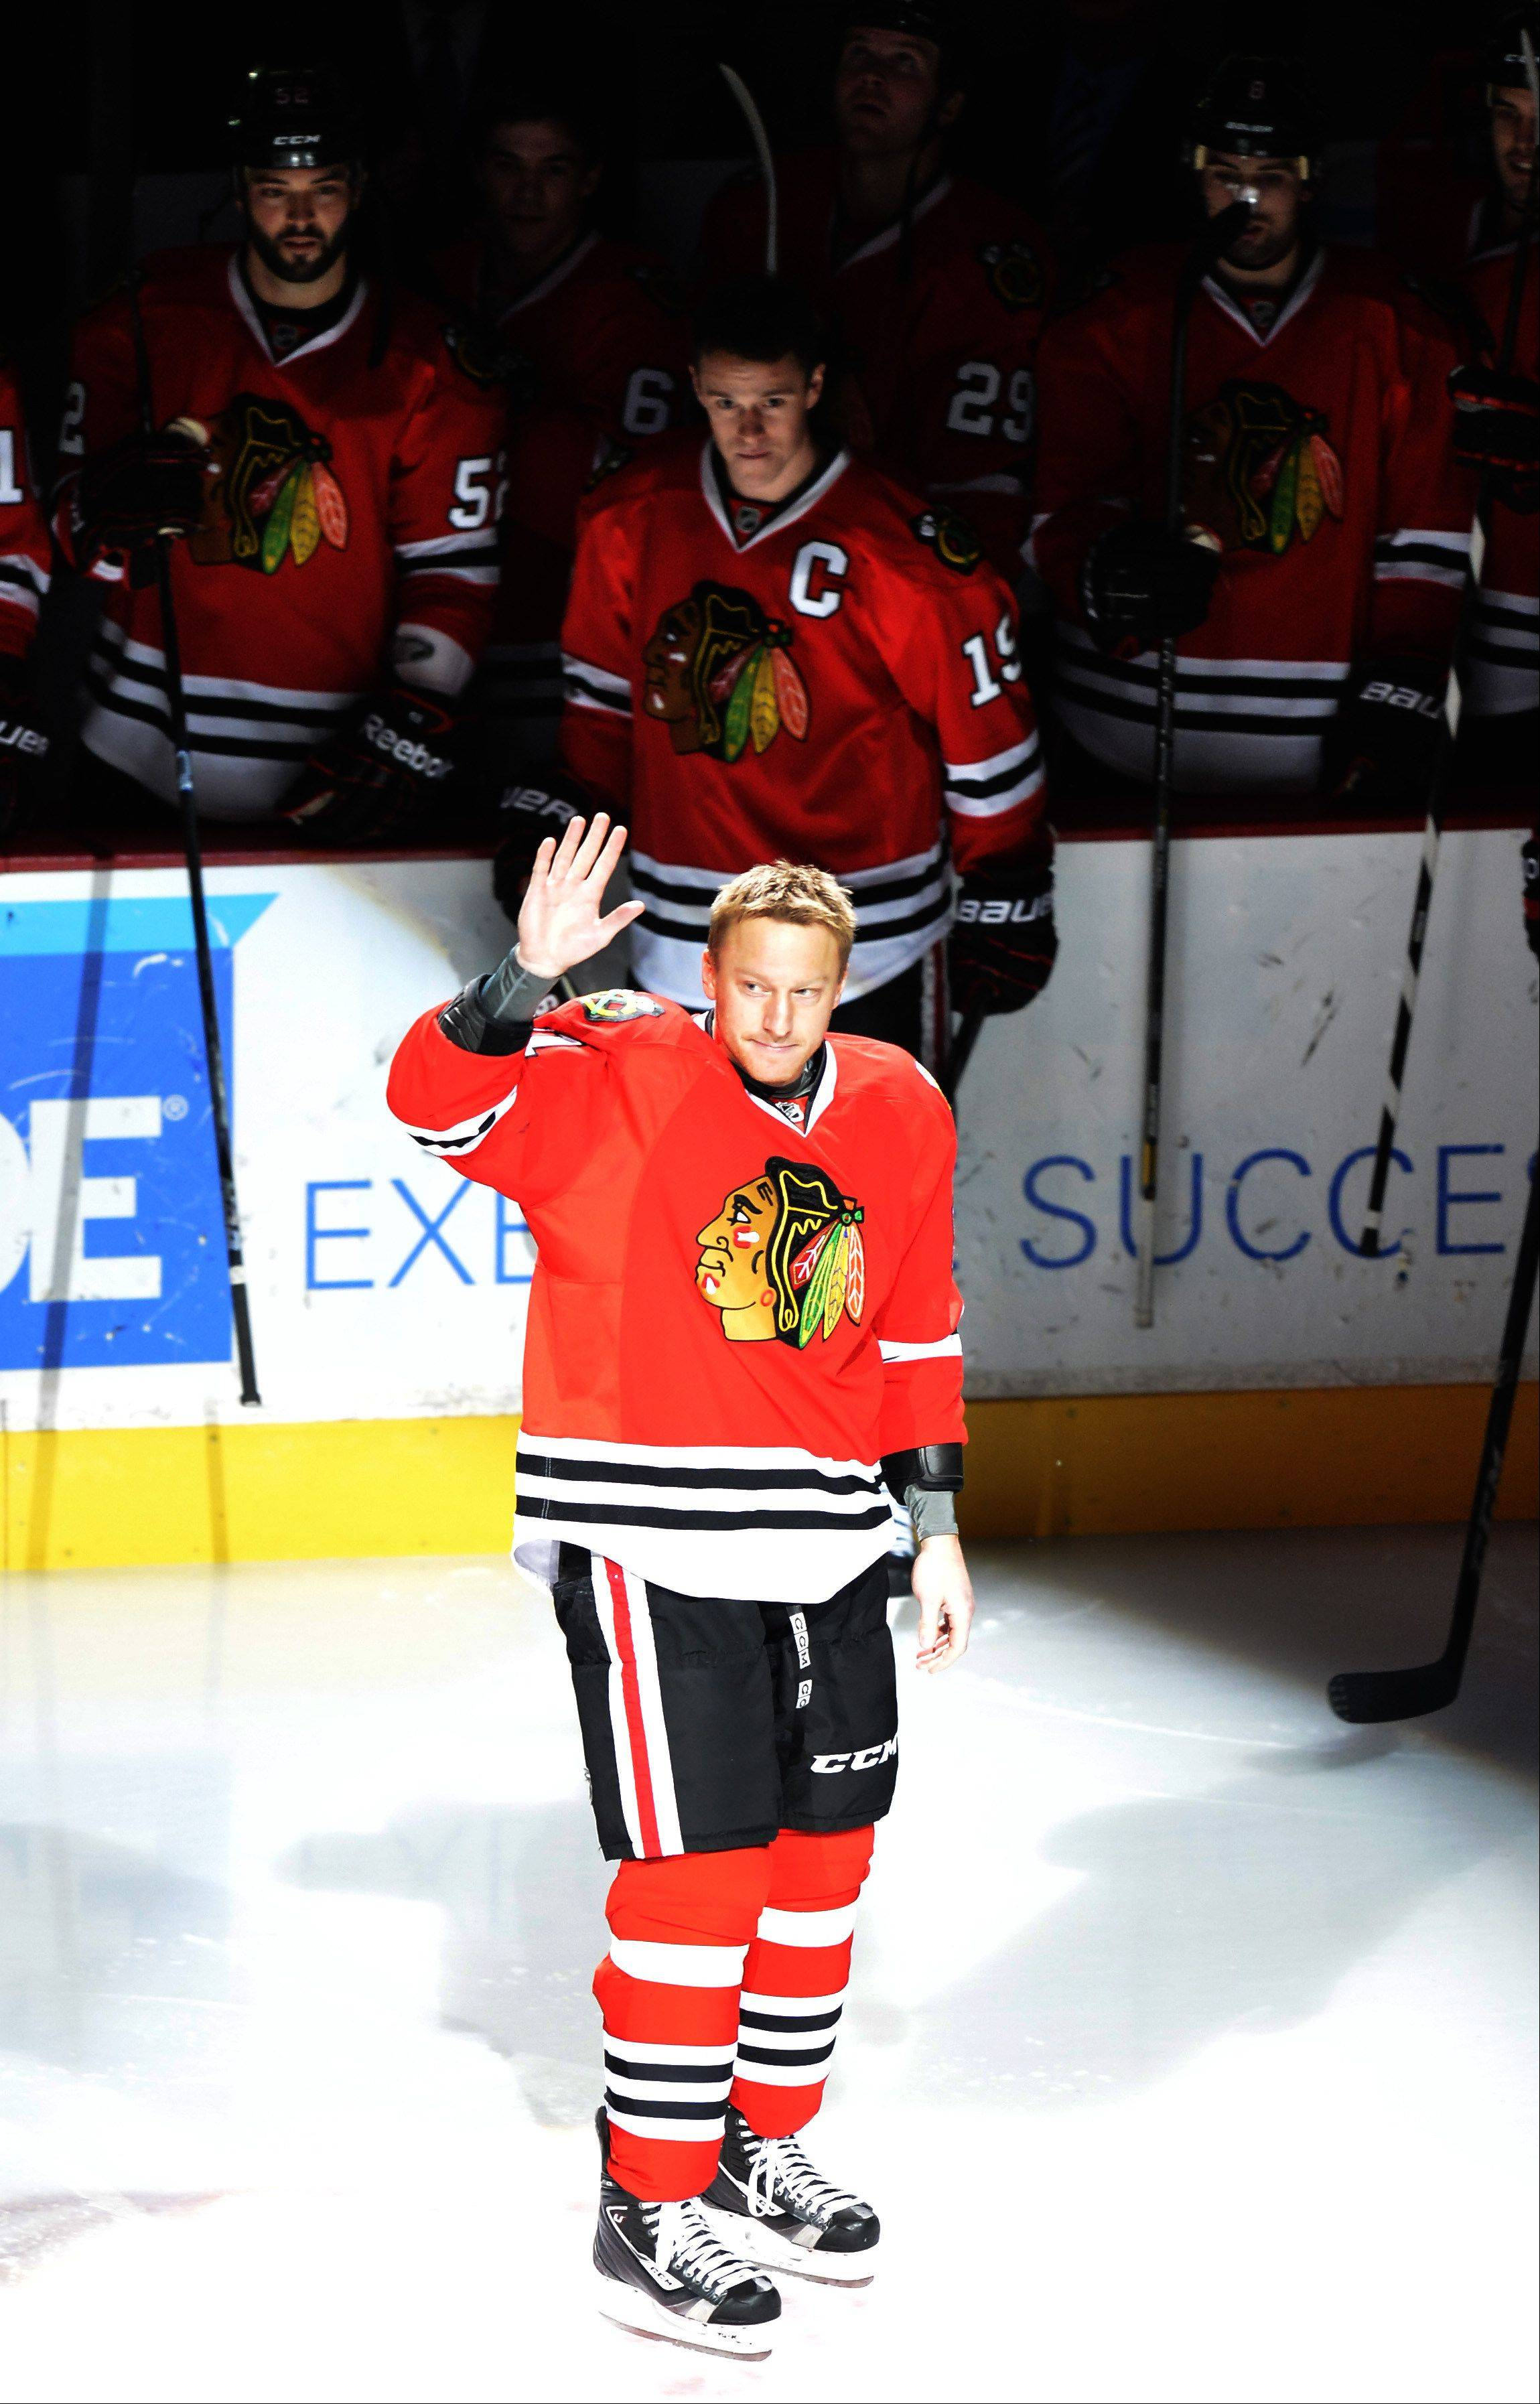 Chicago Blackhawks right wing Marian Hossa of Slovokia is honored before an NHL hockey game against the Minnesota Wild for playing in his 1,000th career game.